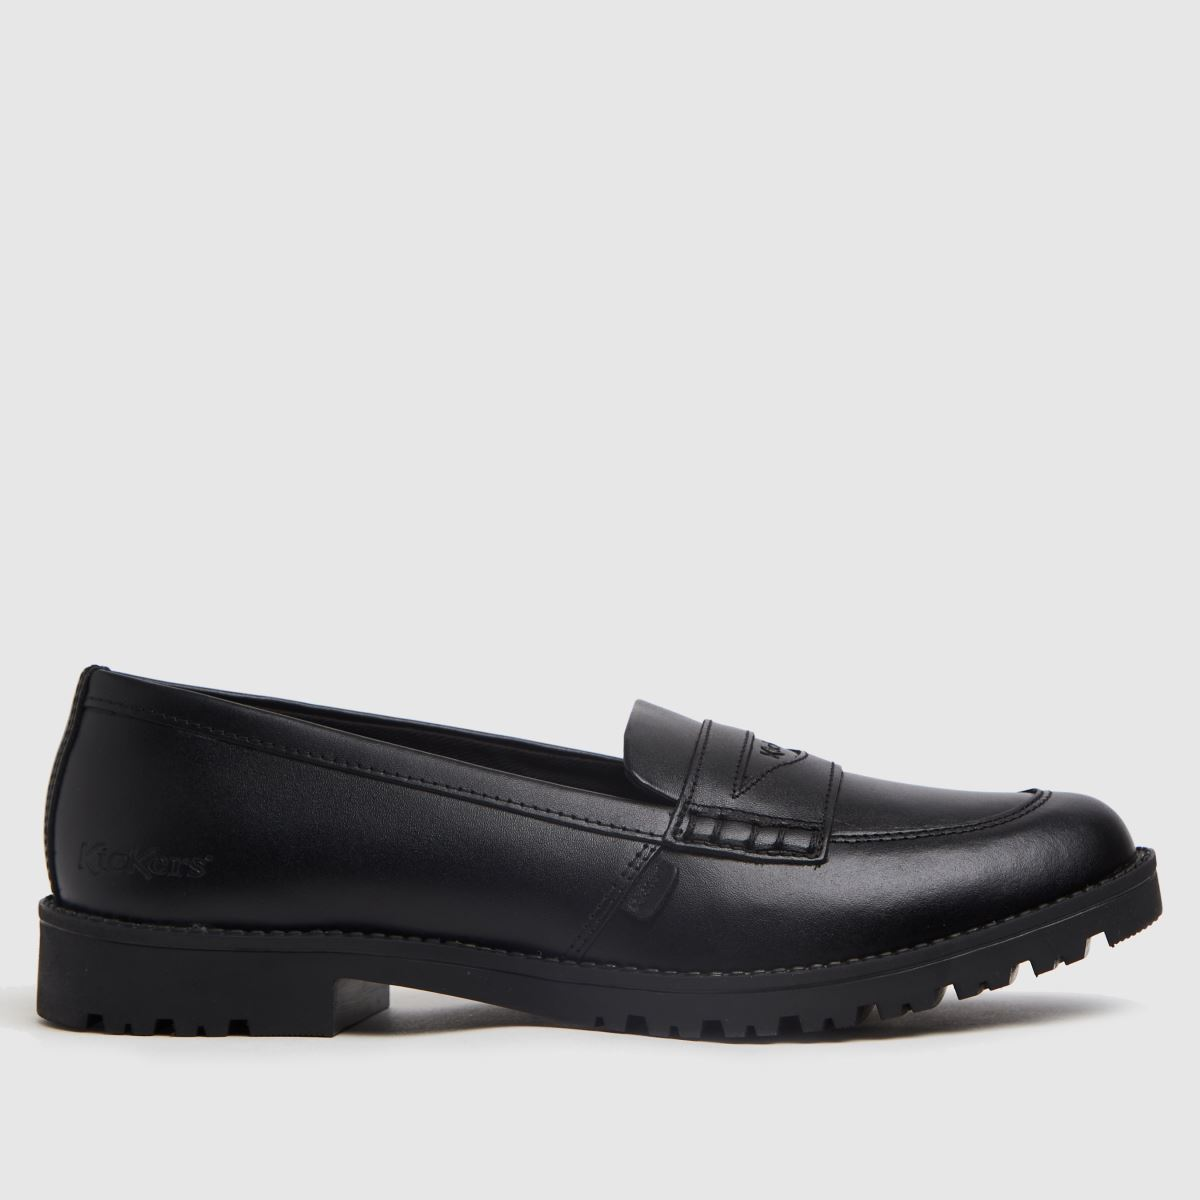 Kickers Black Lachly Loafer Mono Flat Shoes